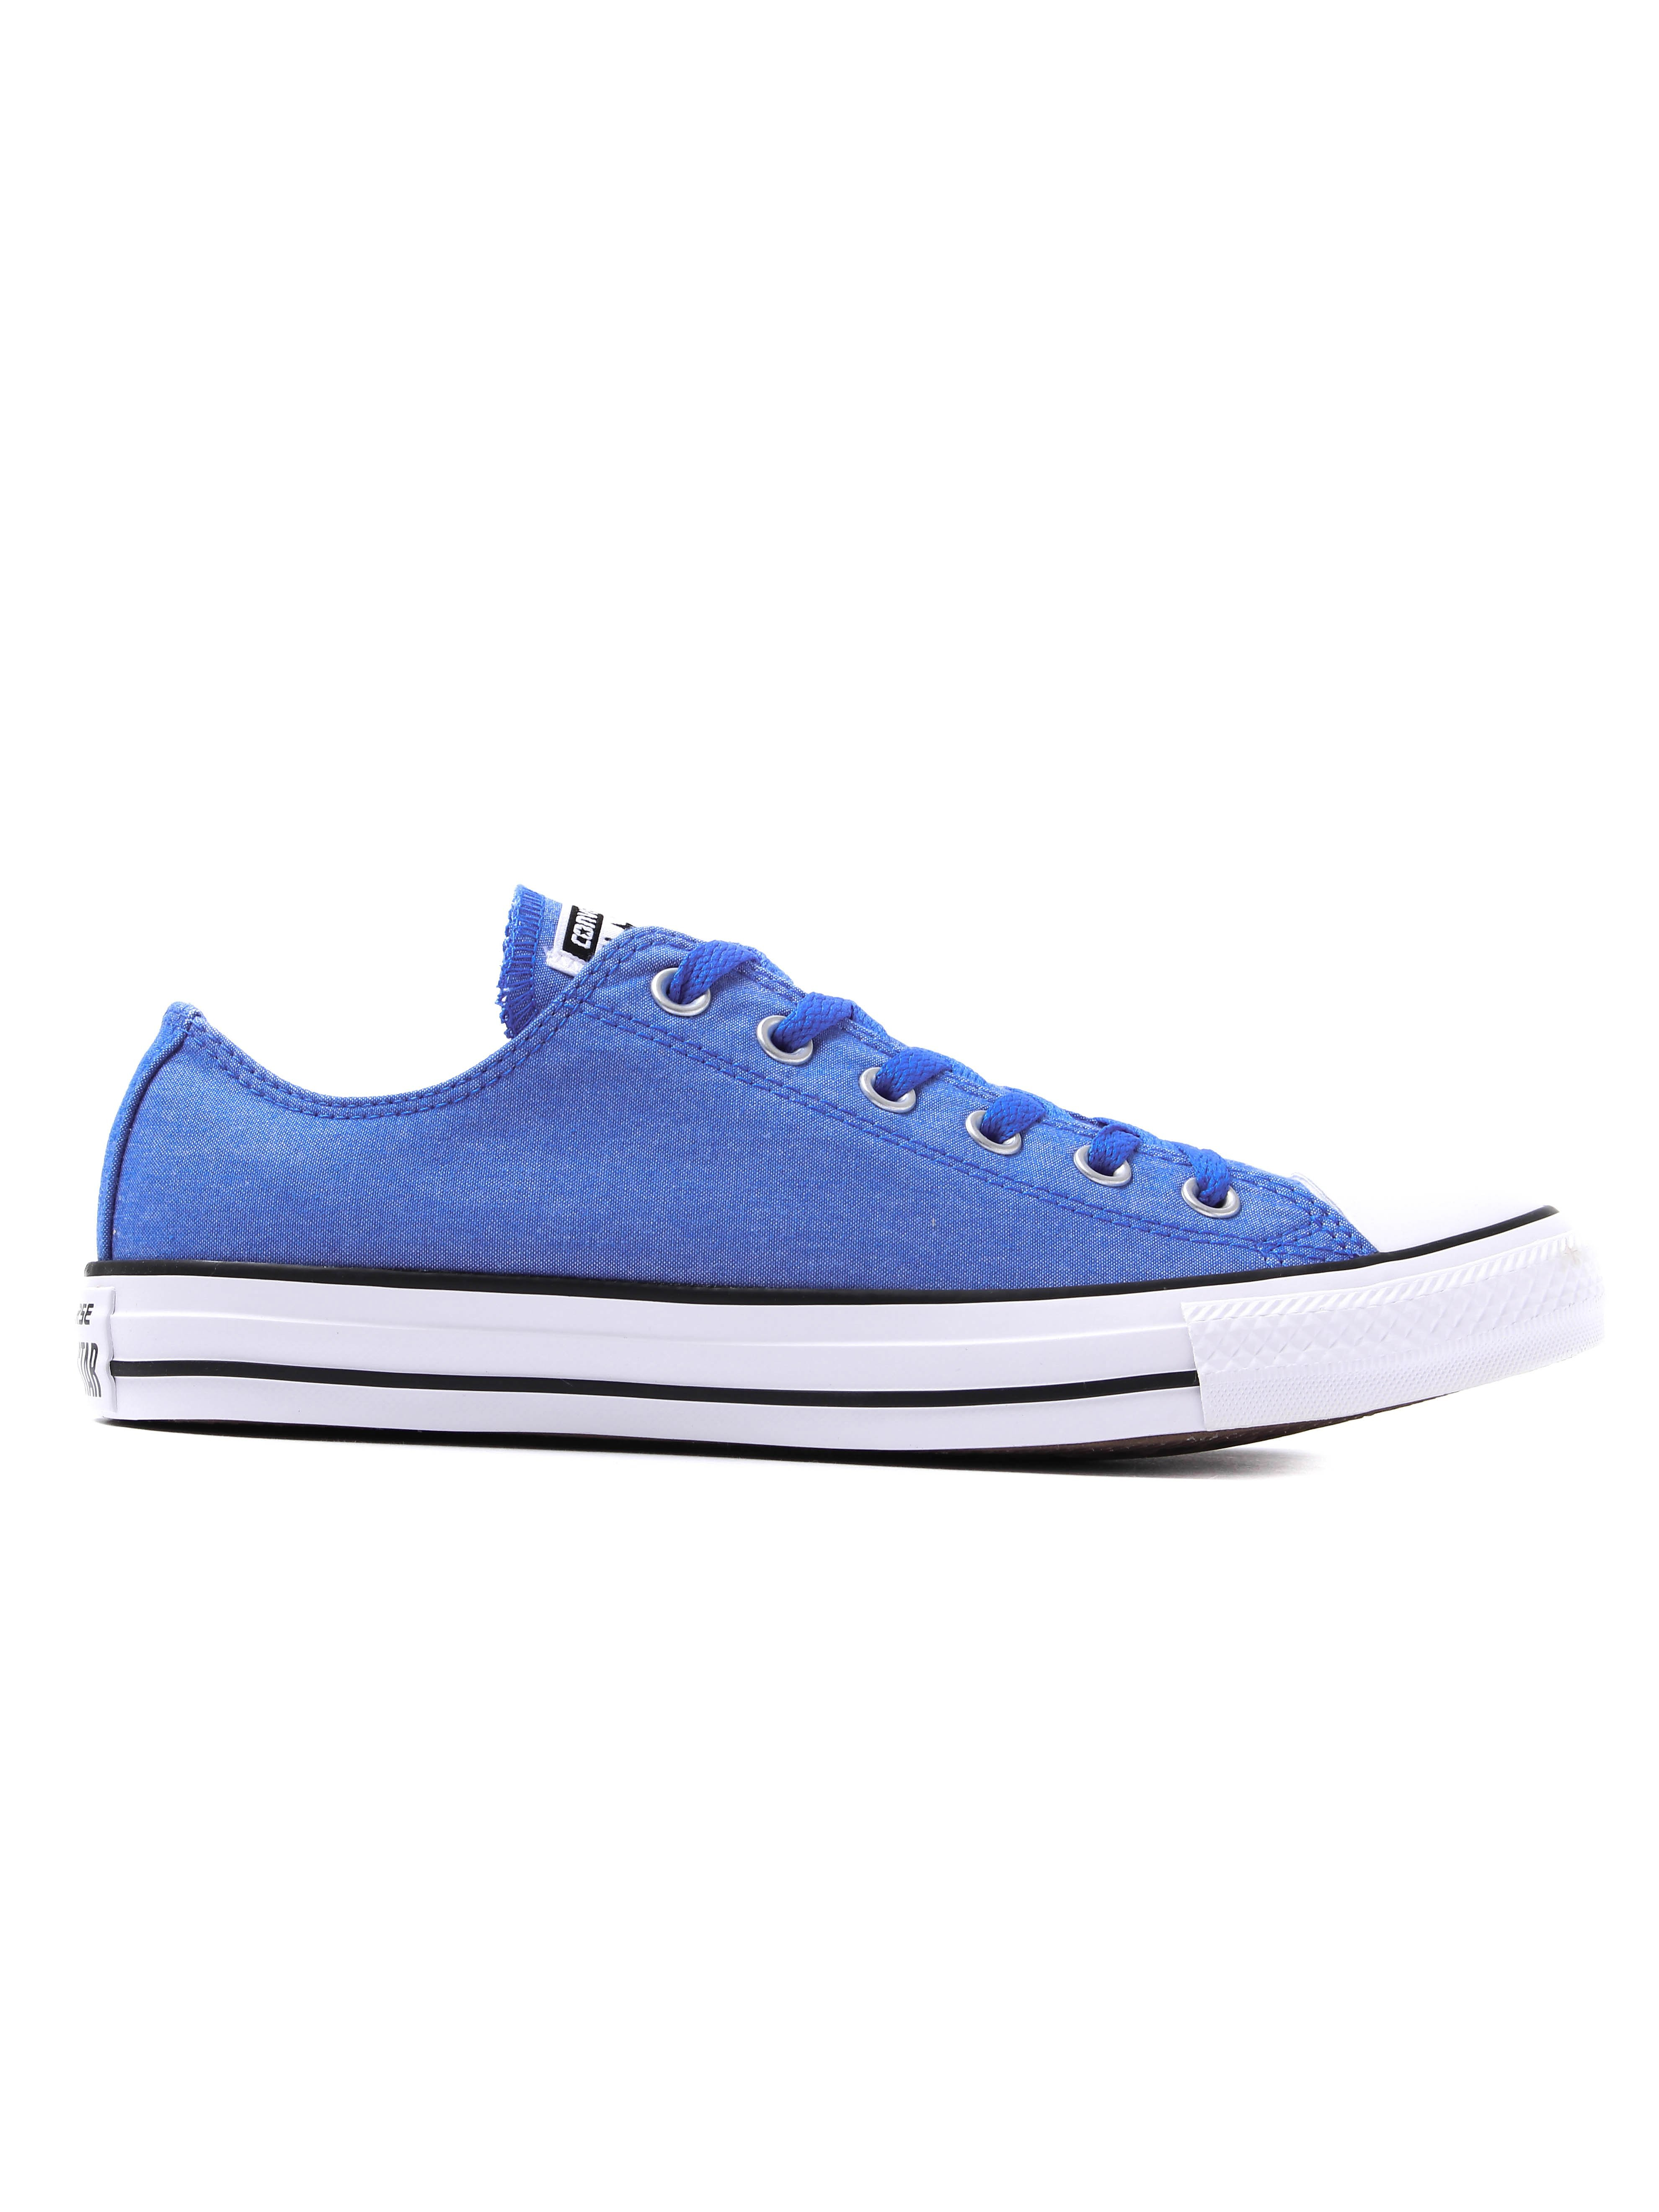 Converse Men's Chuck Taylor All Star OX Trainers - Blue Chambray